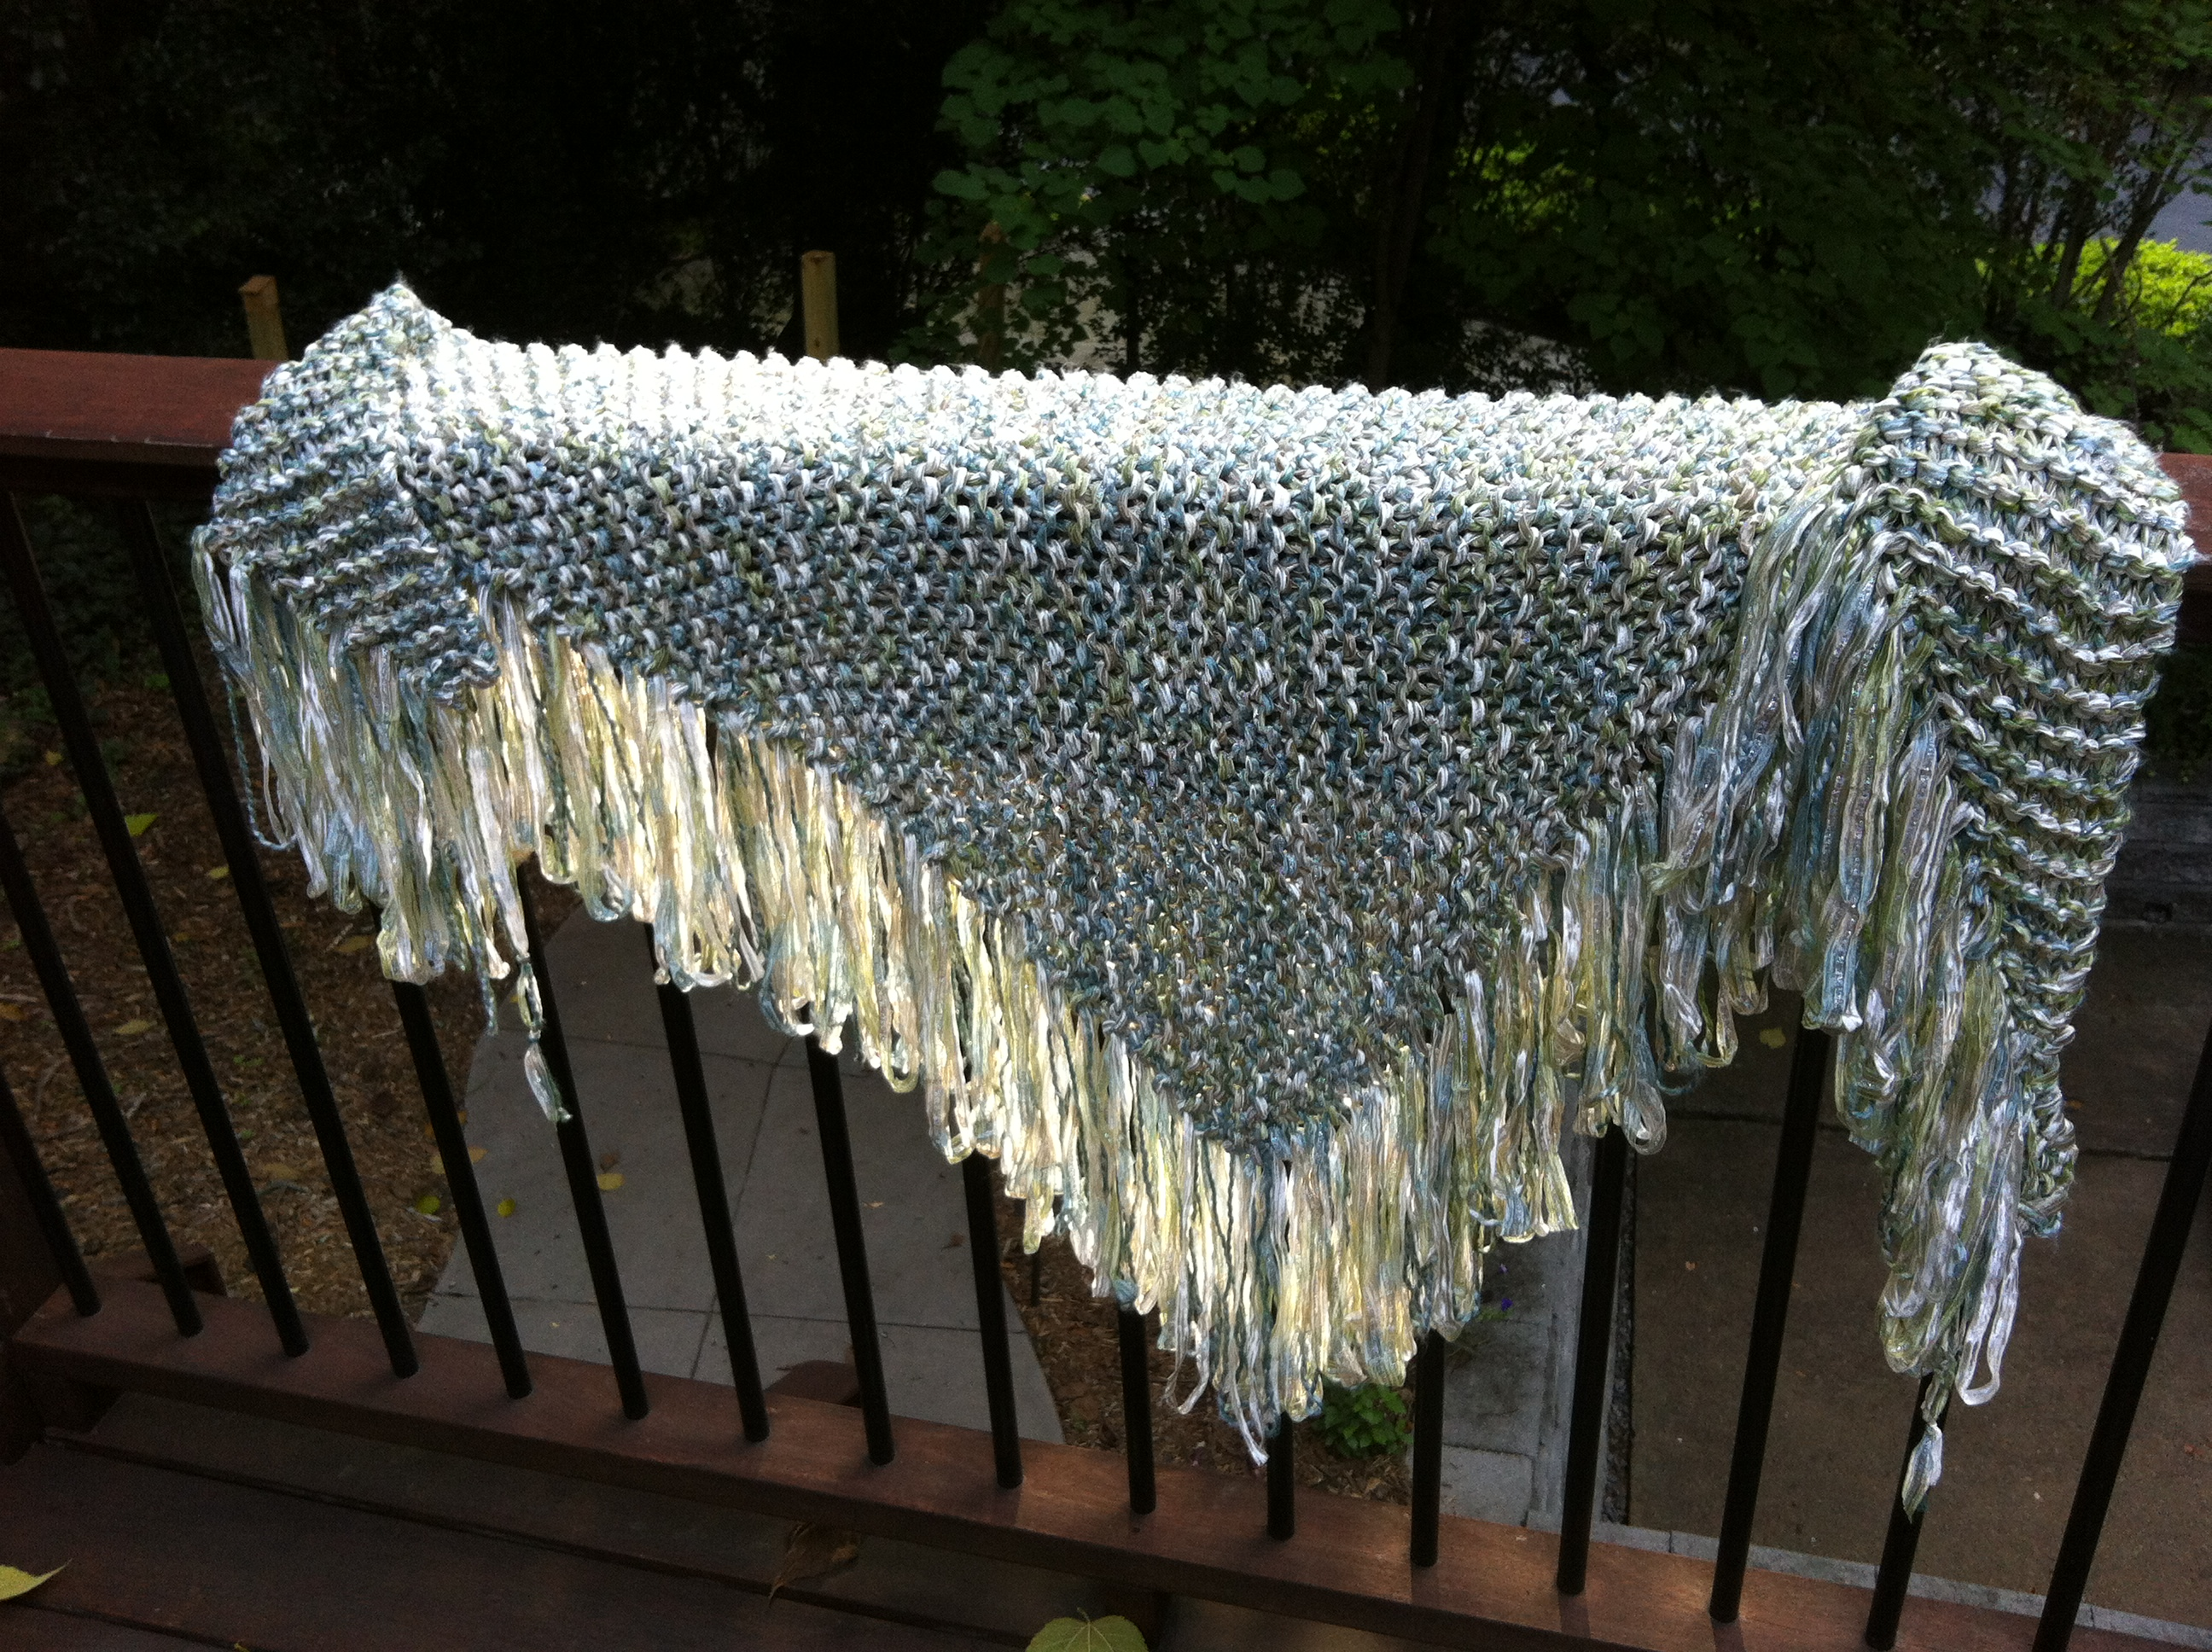 Ribbon Shawl I Completed After Meditating At The Zen Center